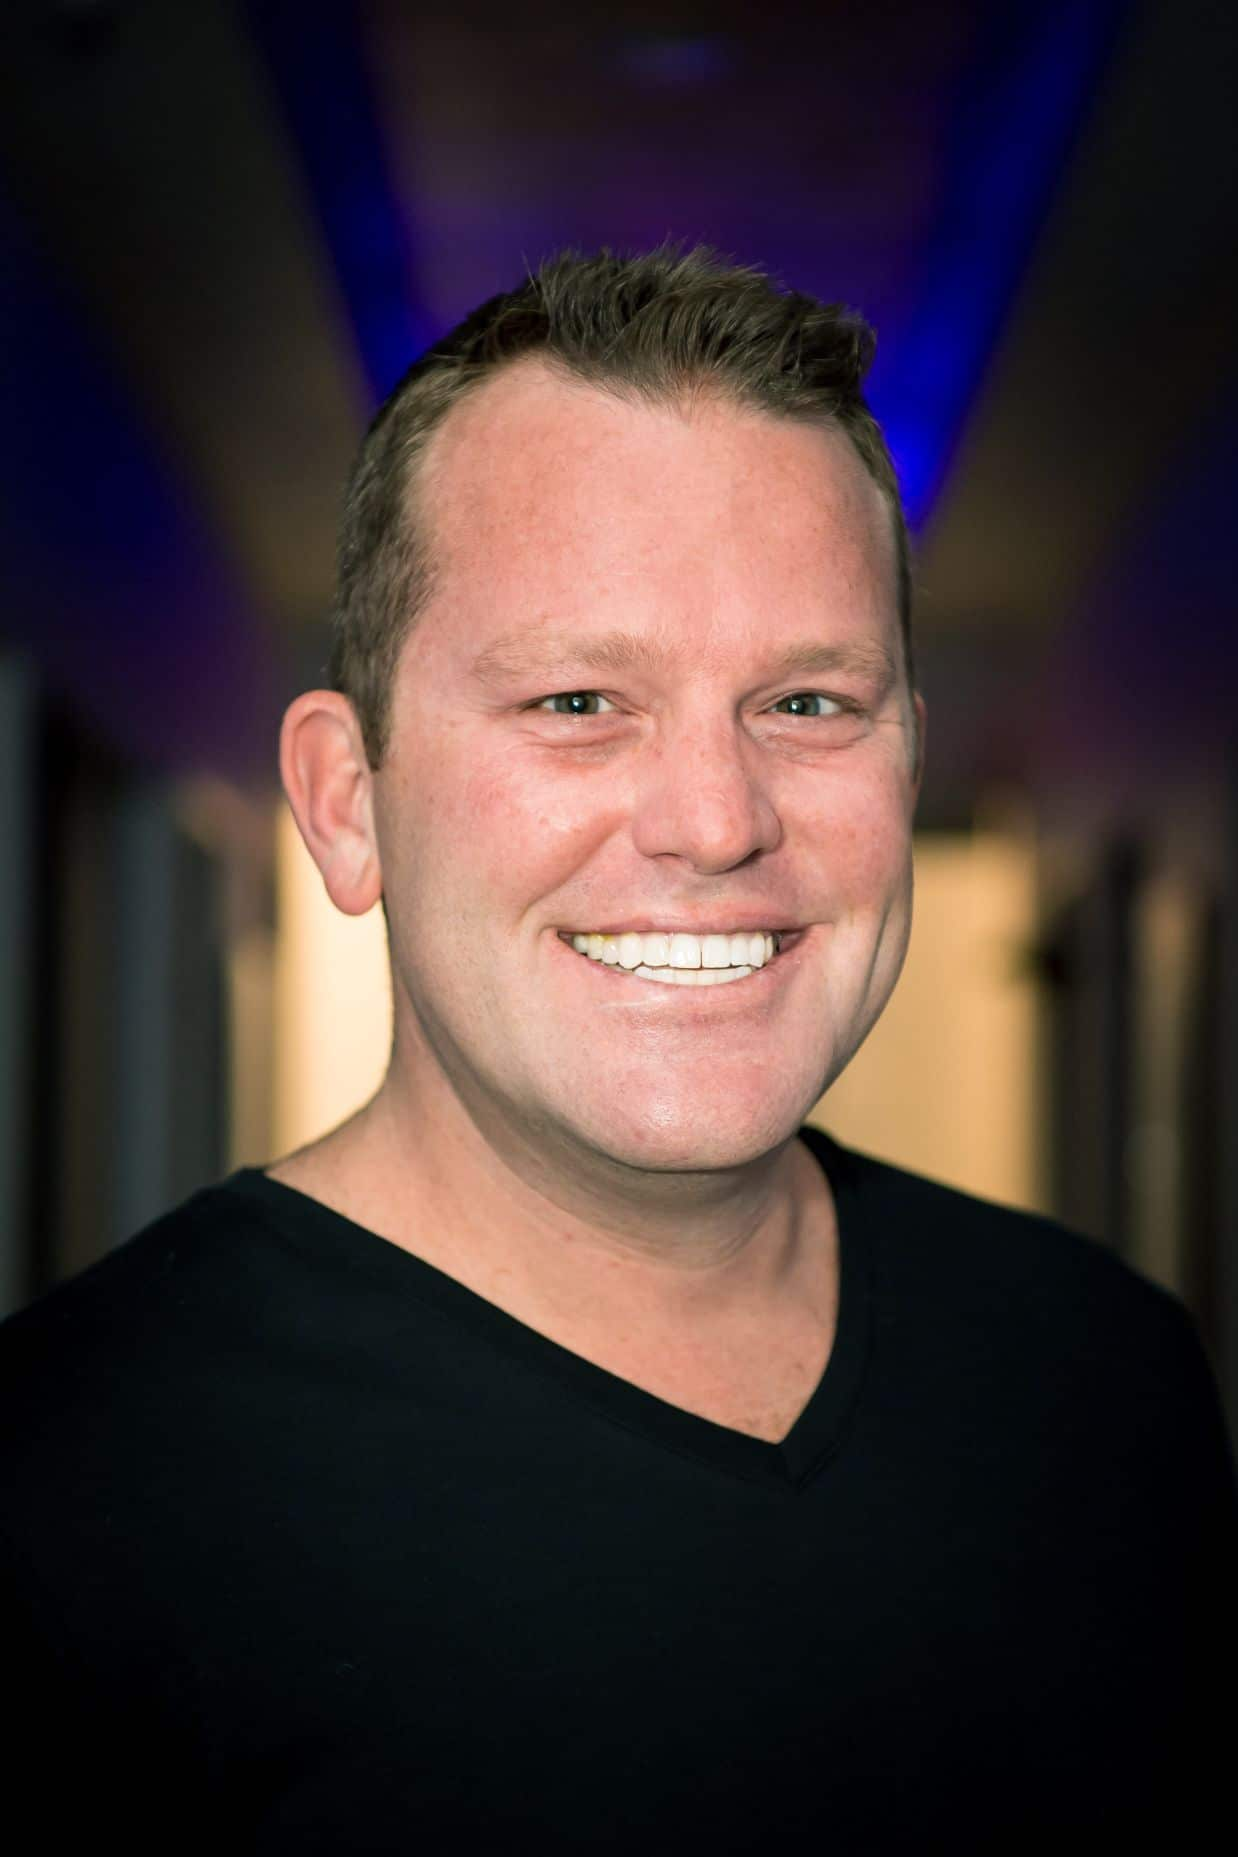 Dr. Clark Steffens - LIV Dentistry - Dentist for The Colony and Frisco, TX. Dentist office Frisco, The Colony, Texas